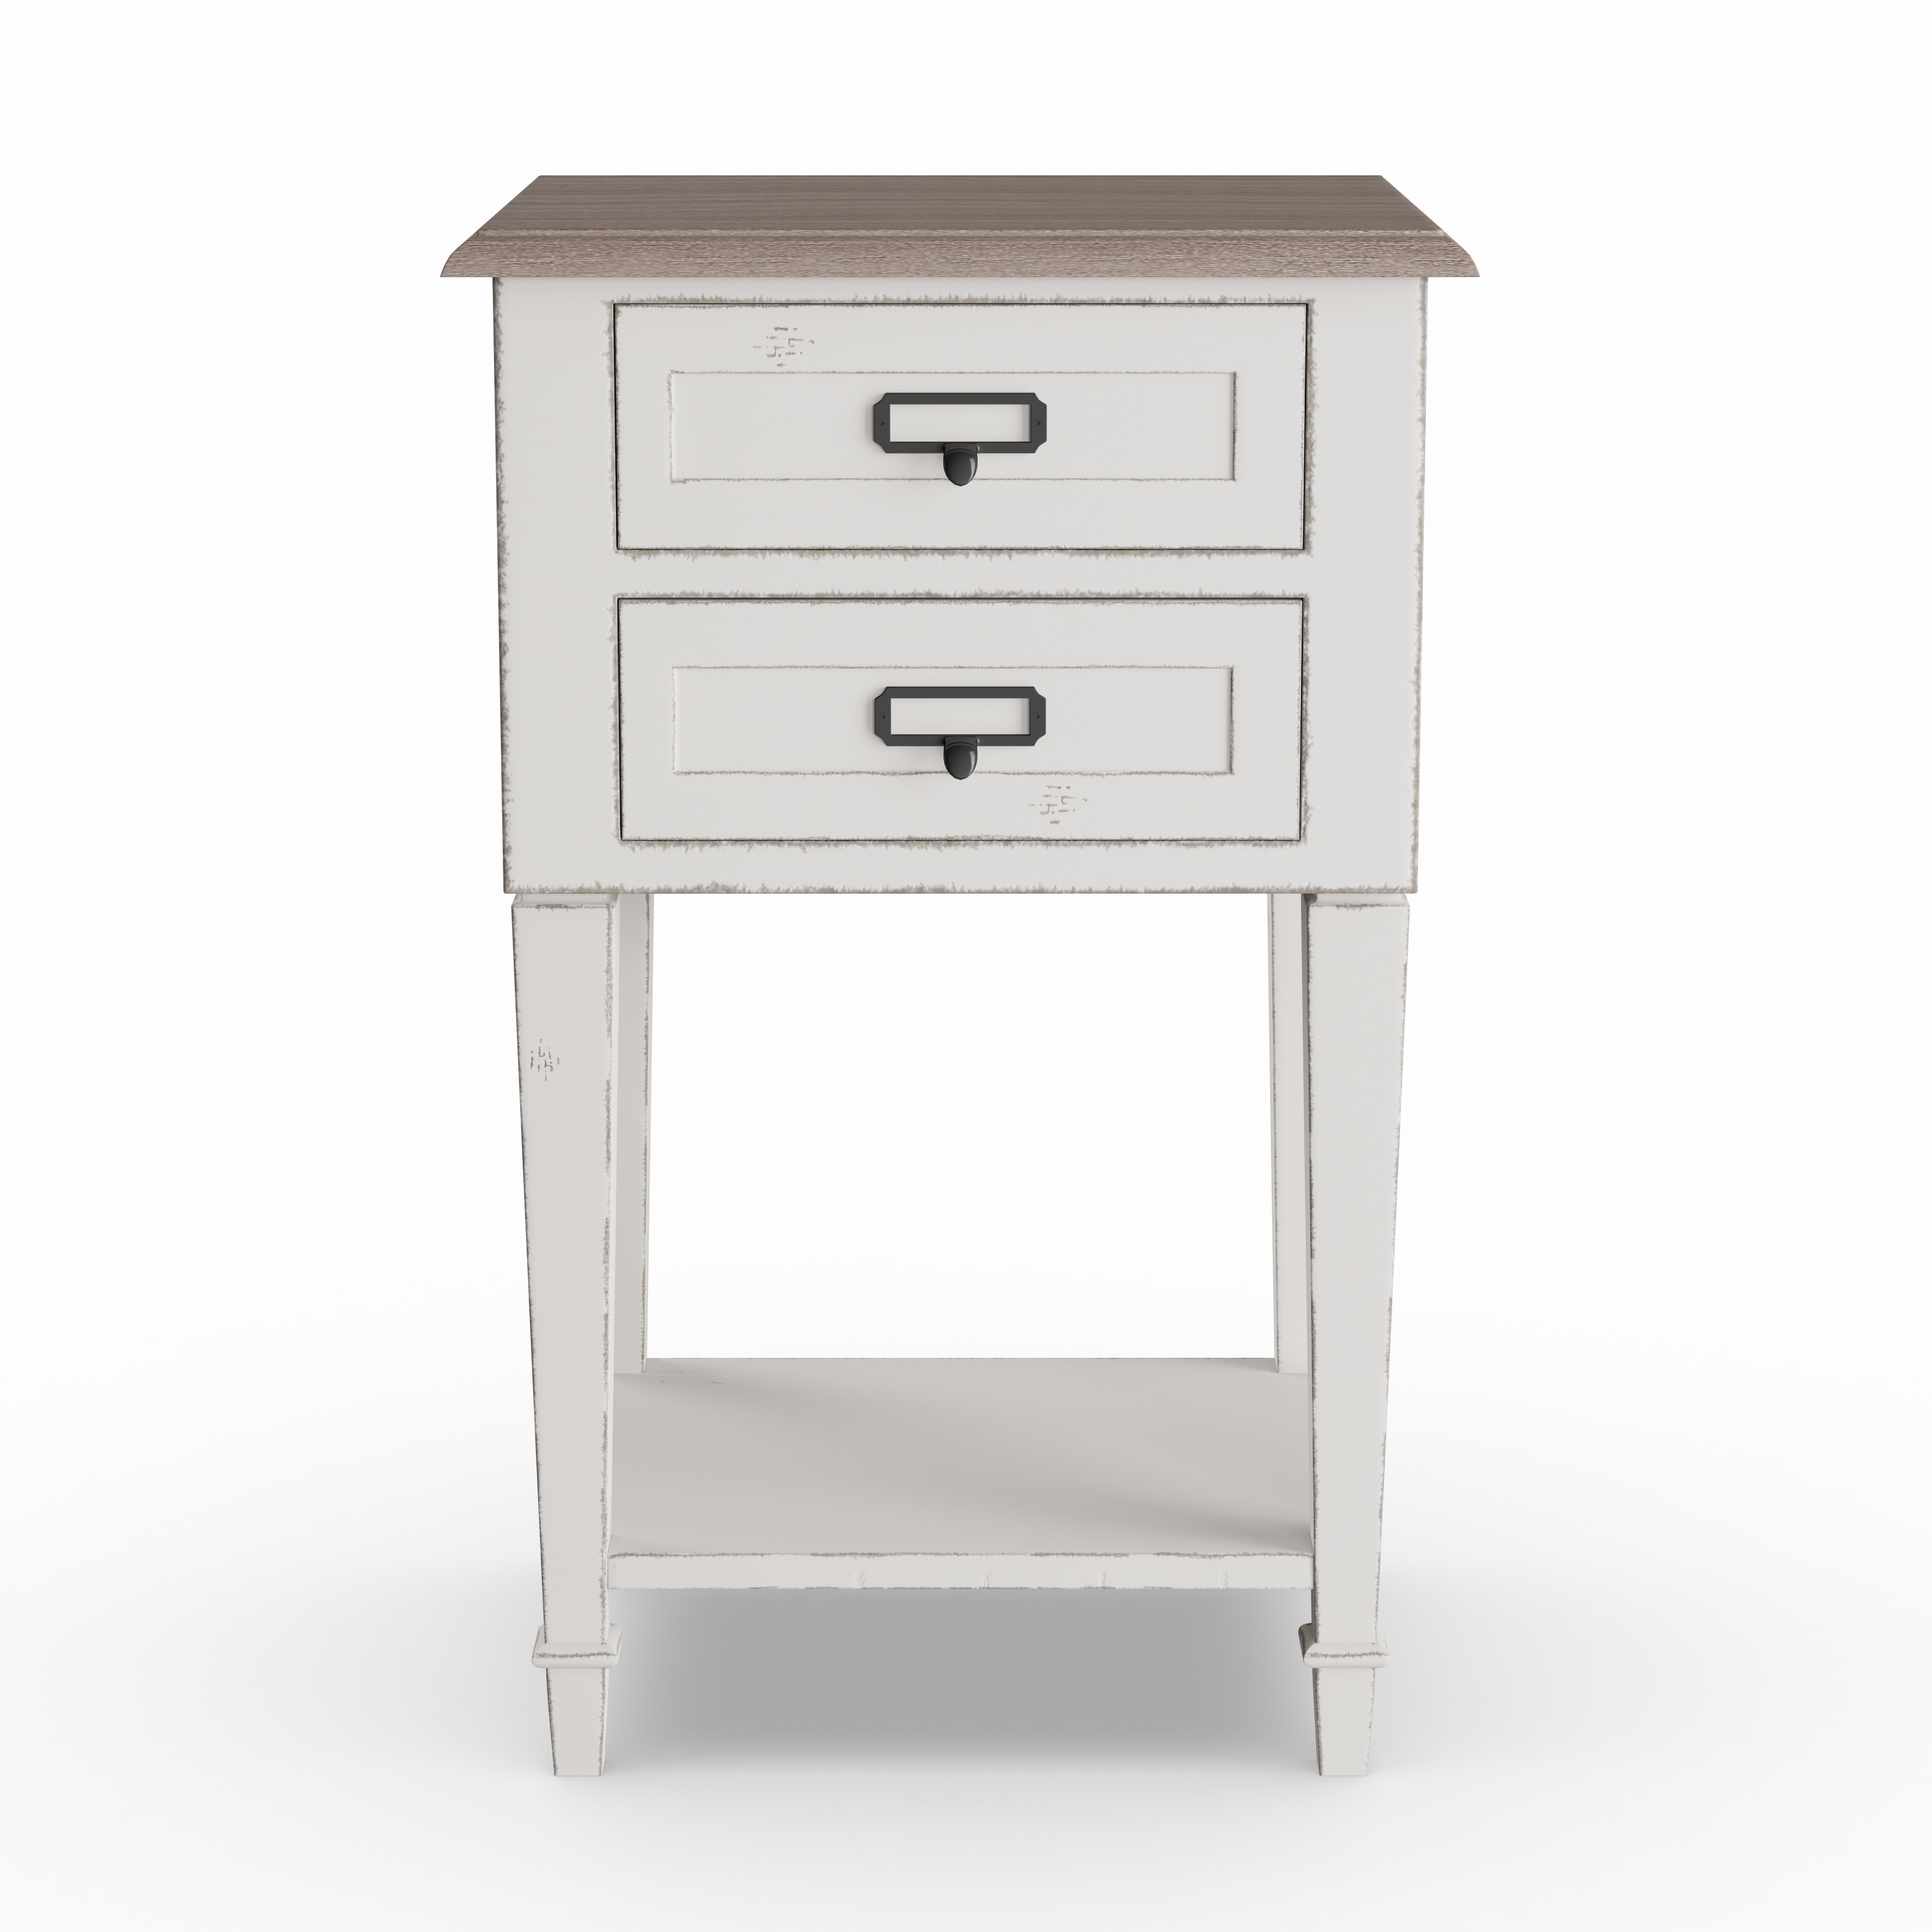 The Gray Barn Heart And Soil Weathered Oak And White Wash Distressed Finish Wood Nightstand